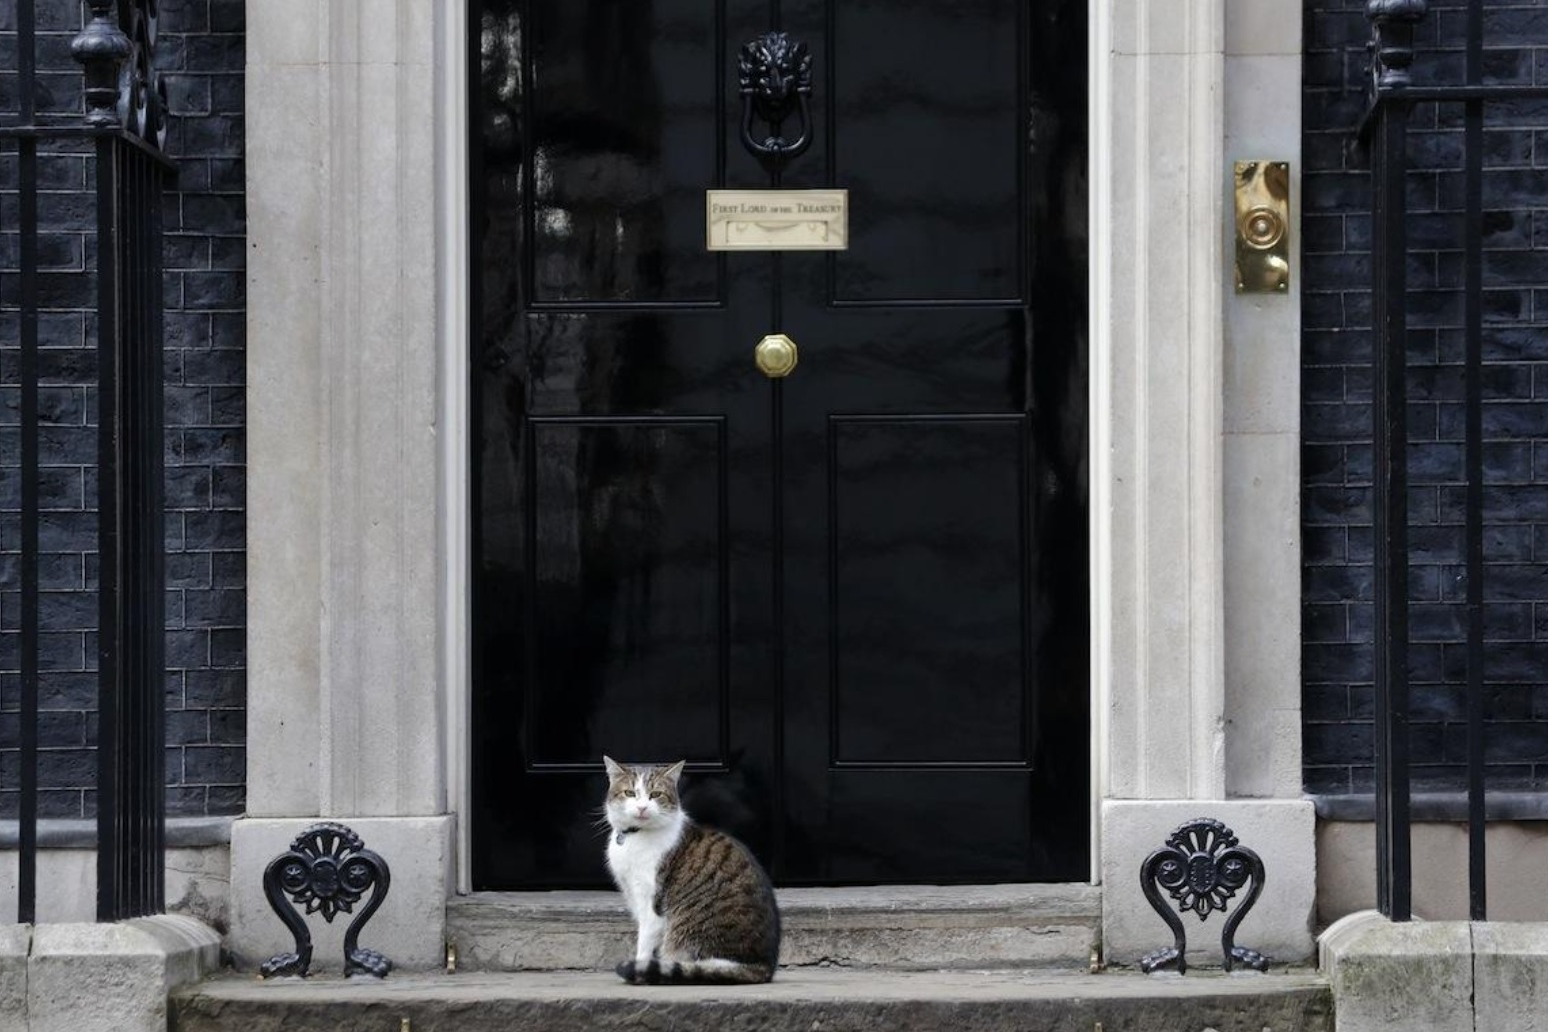 Chief mouser Larry the cat celebrates 10 years in Downing Street thumbnail